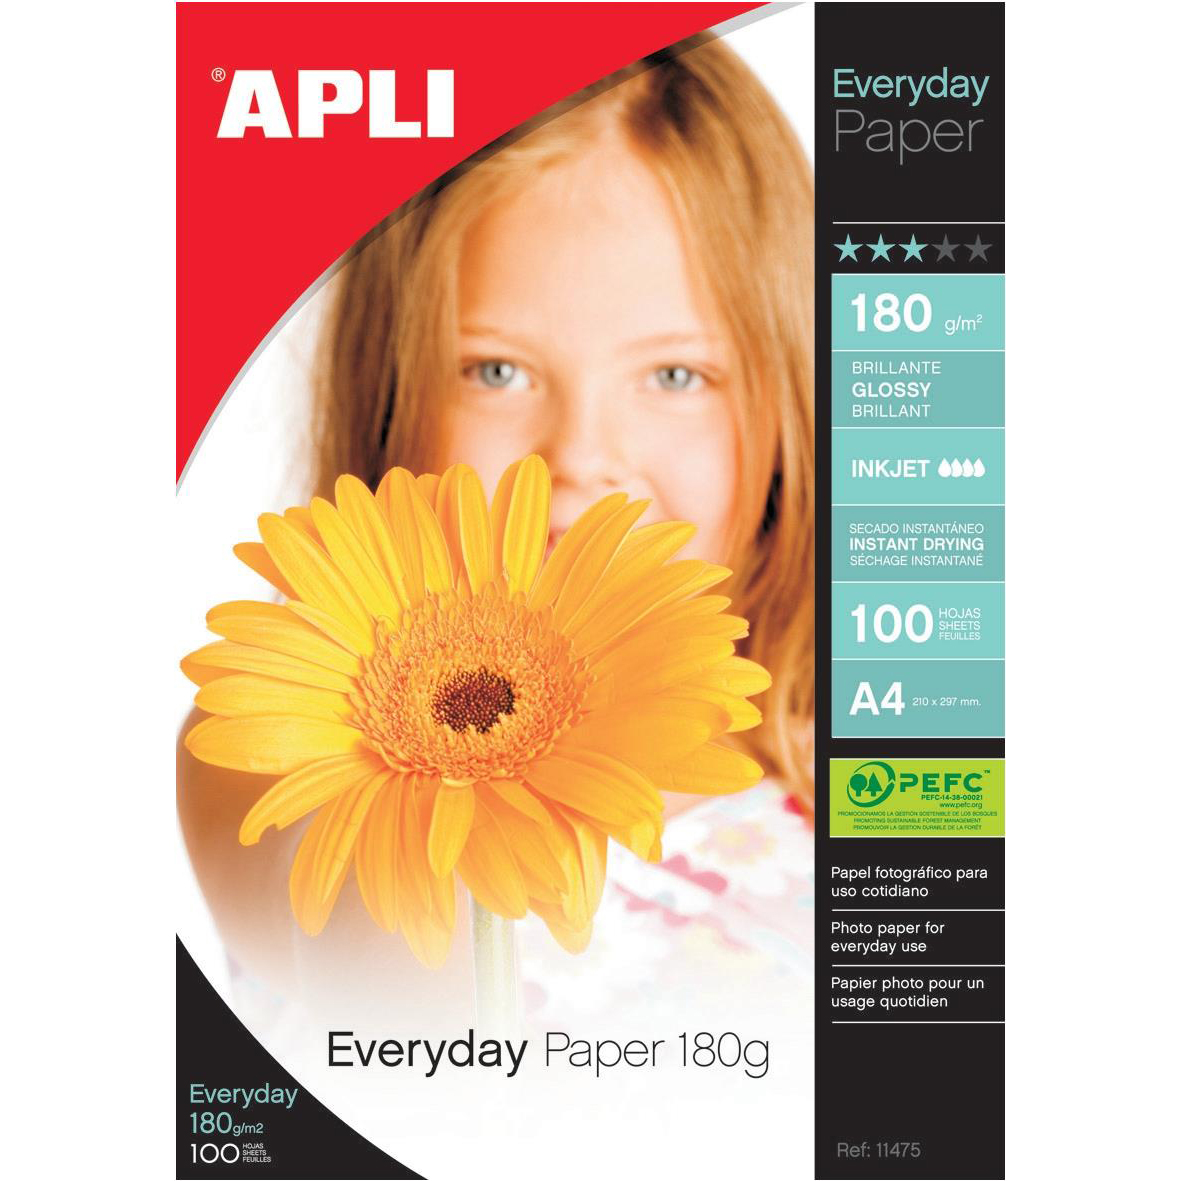 Photo Paper Apli Everyday Paper Glossy 180gsm A4 Ref 11475 100 Sheets